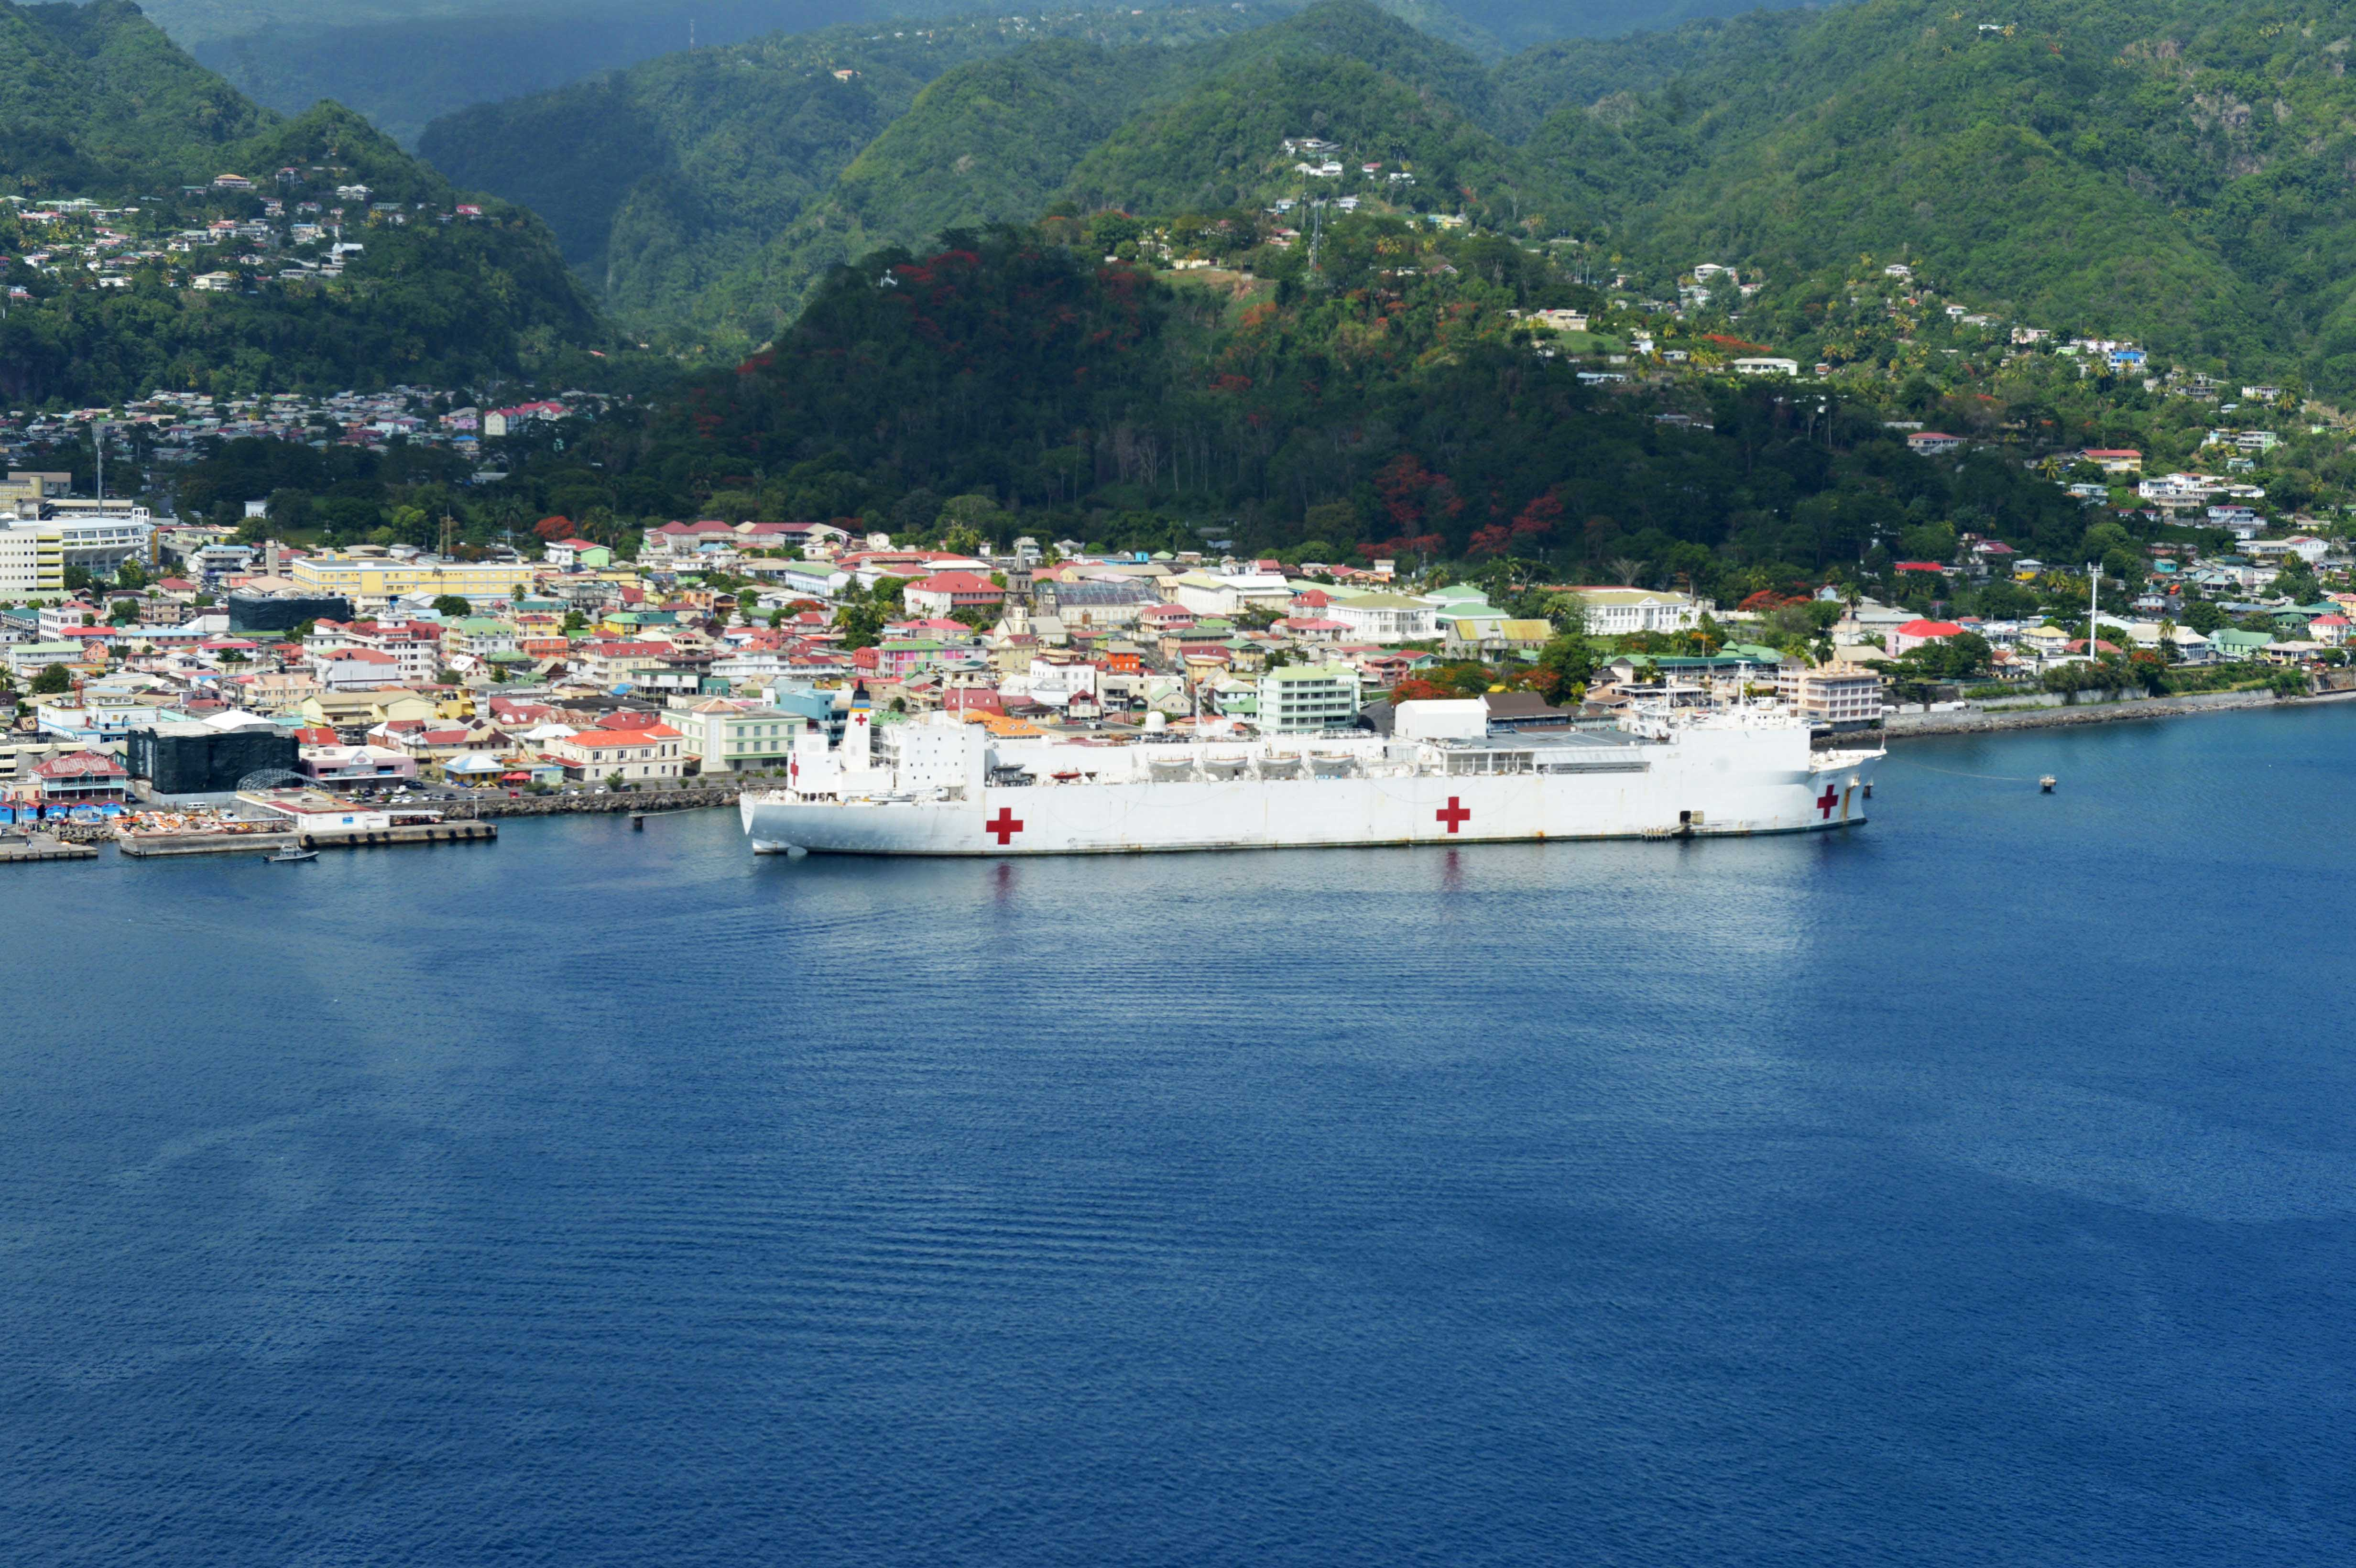 The Military Sealift Command hospital ship USNS Comfort (T-AH 20) is moored pierside in Roseau, Dominica during Continuing Promise 2015